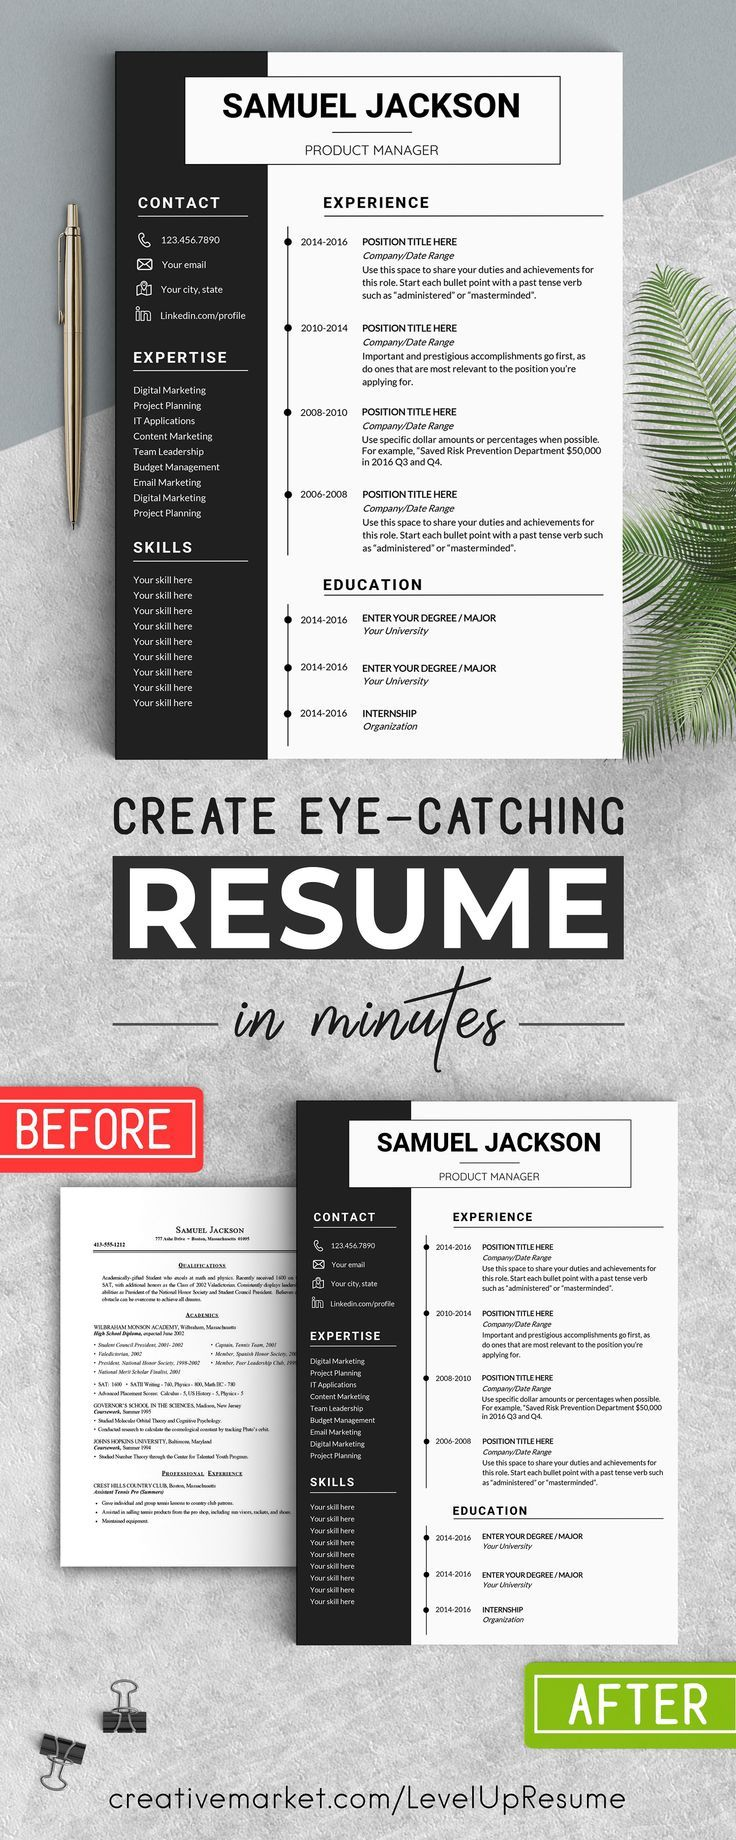 u2b50 ufe0f resume template   cover letter   references  021 samuel